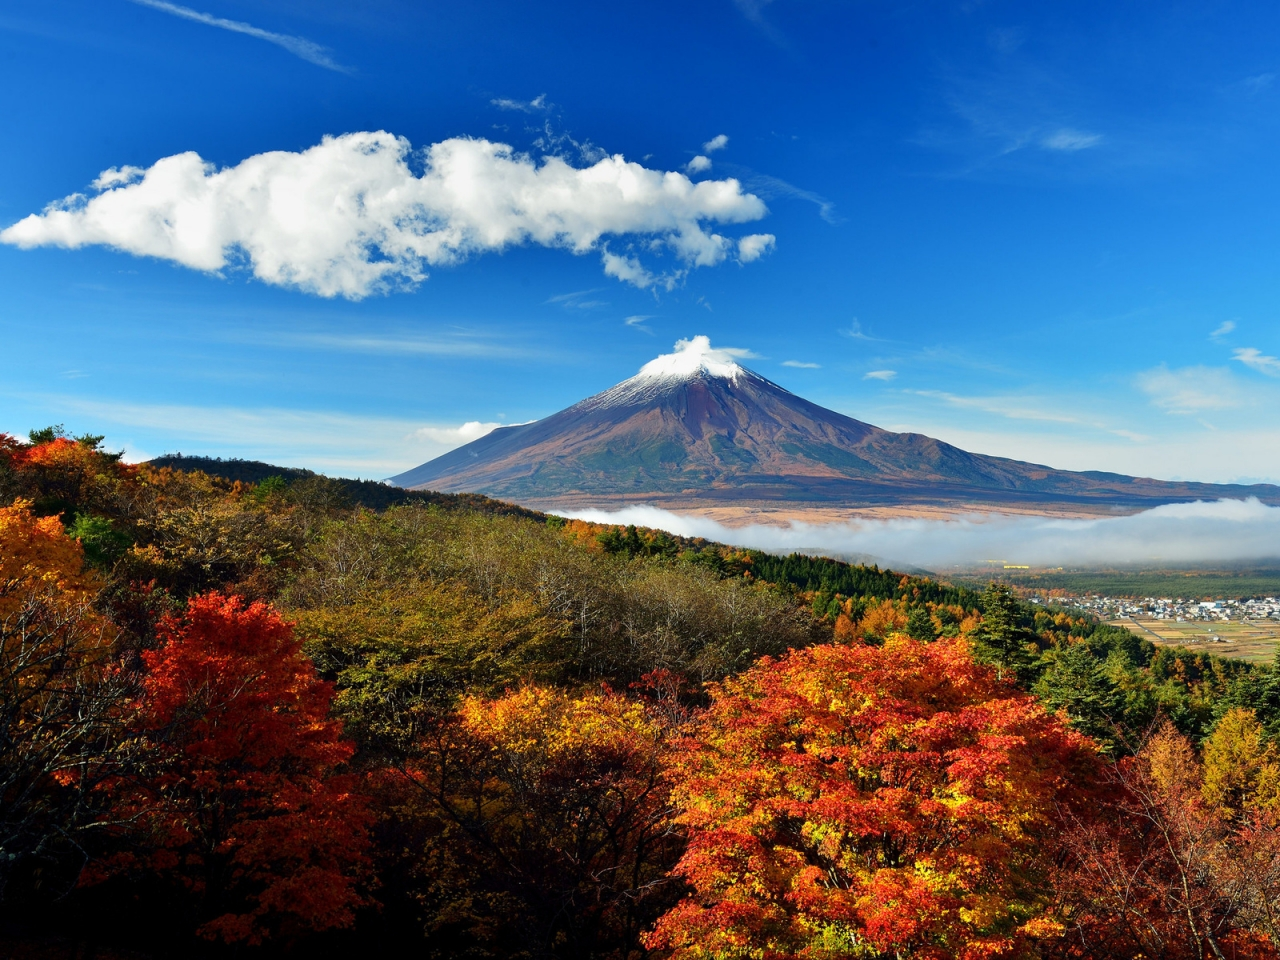 Mount Fuji Japan for 1280 x 960 resolution